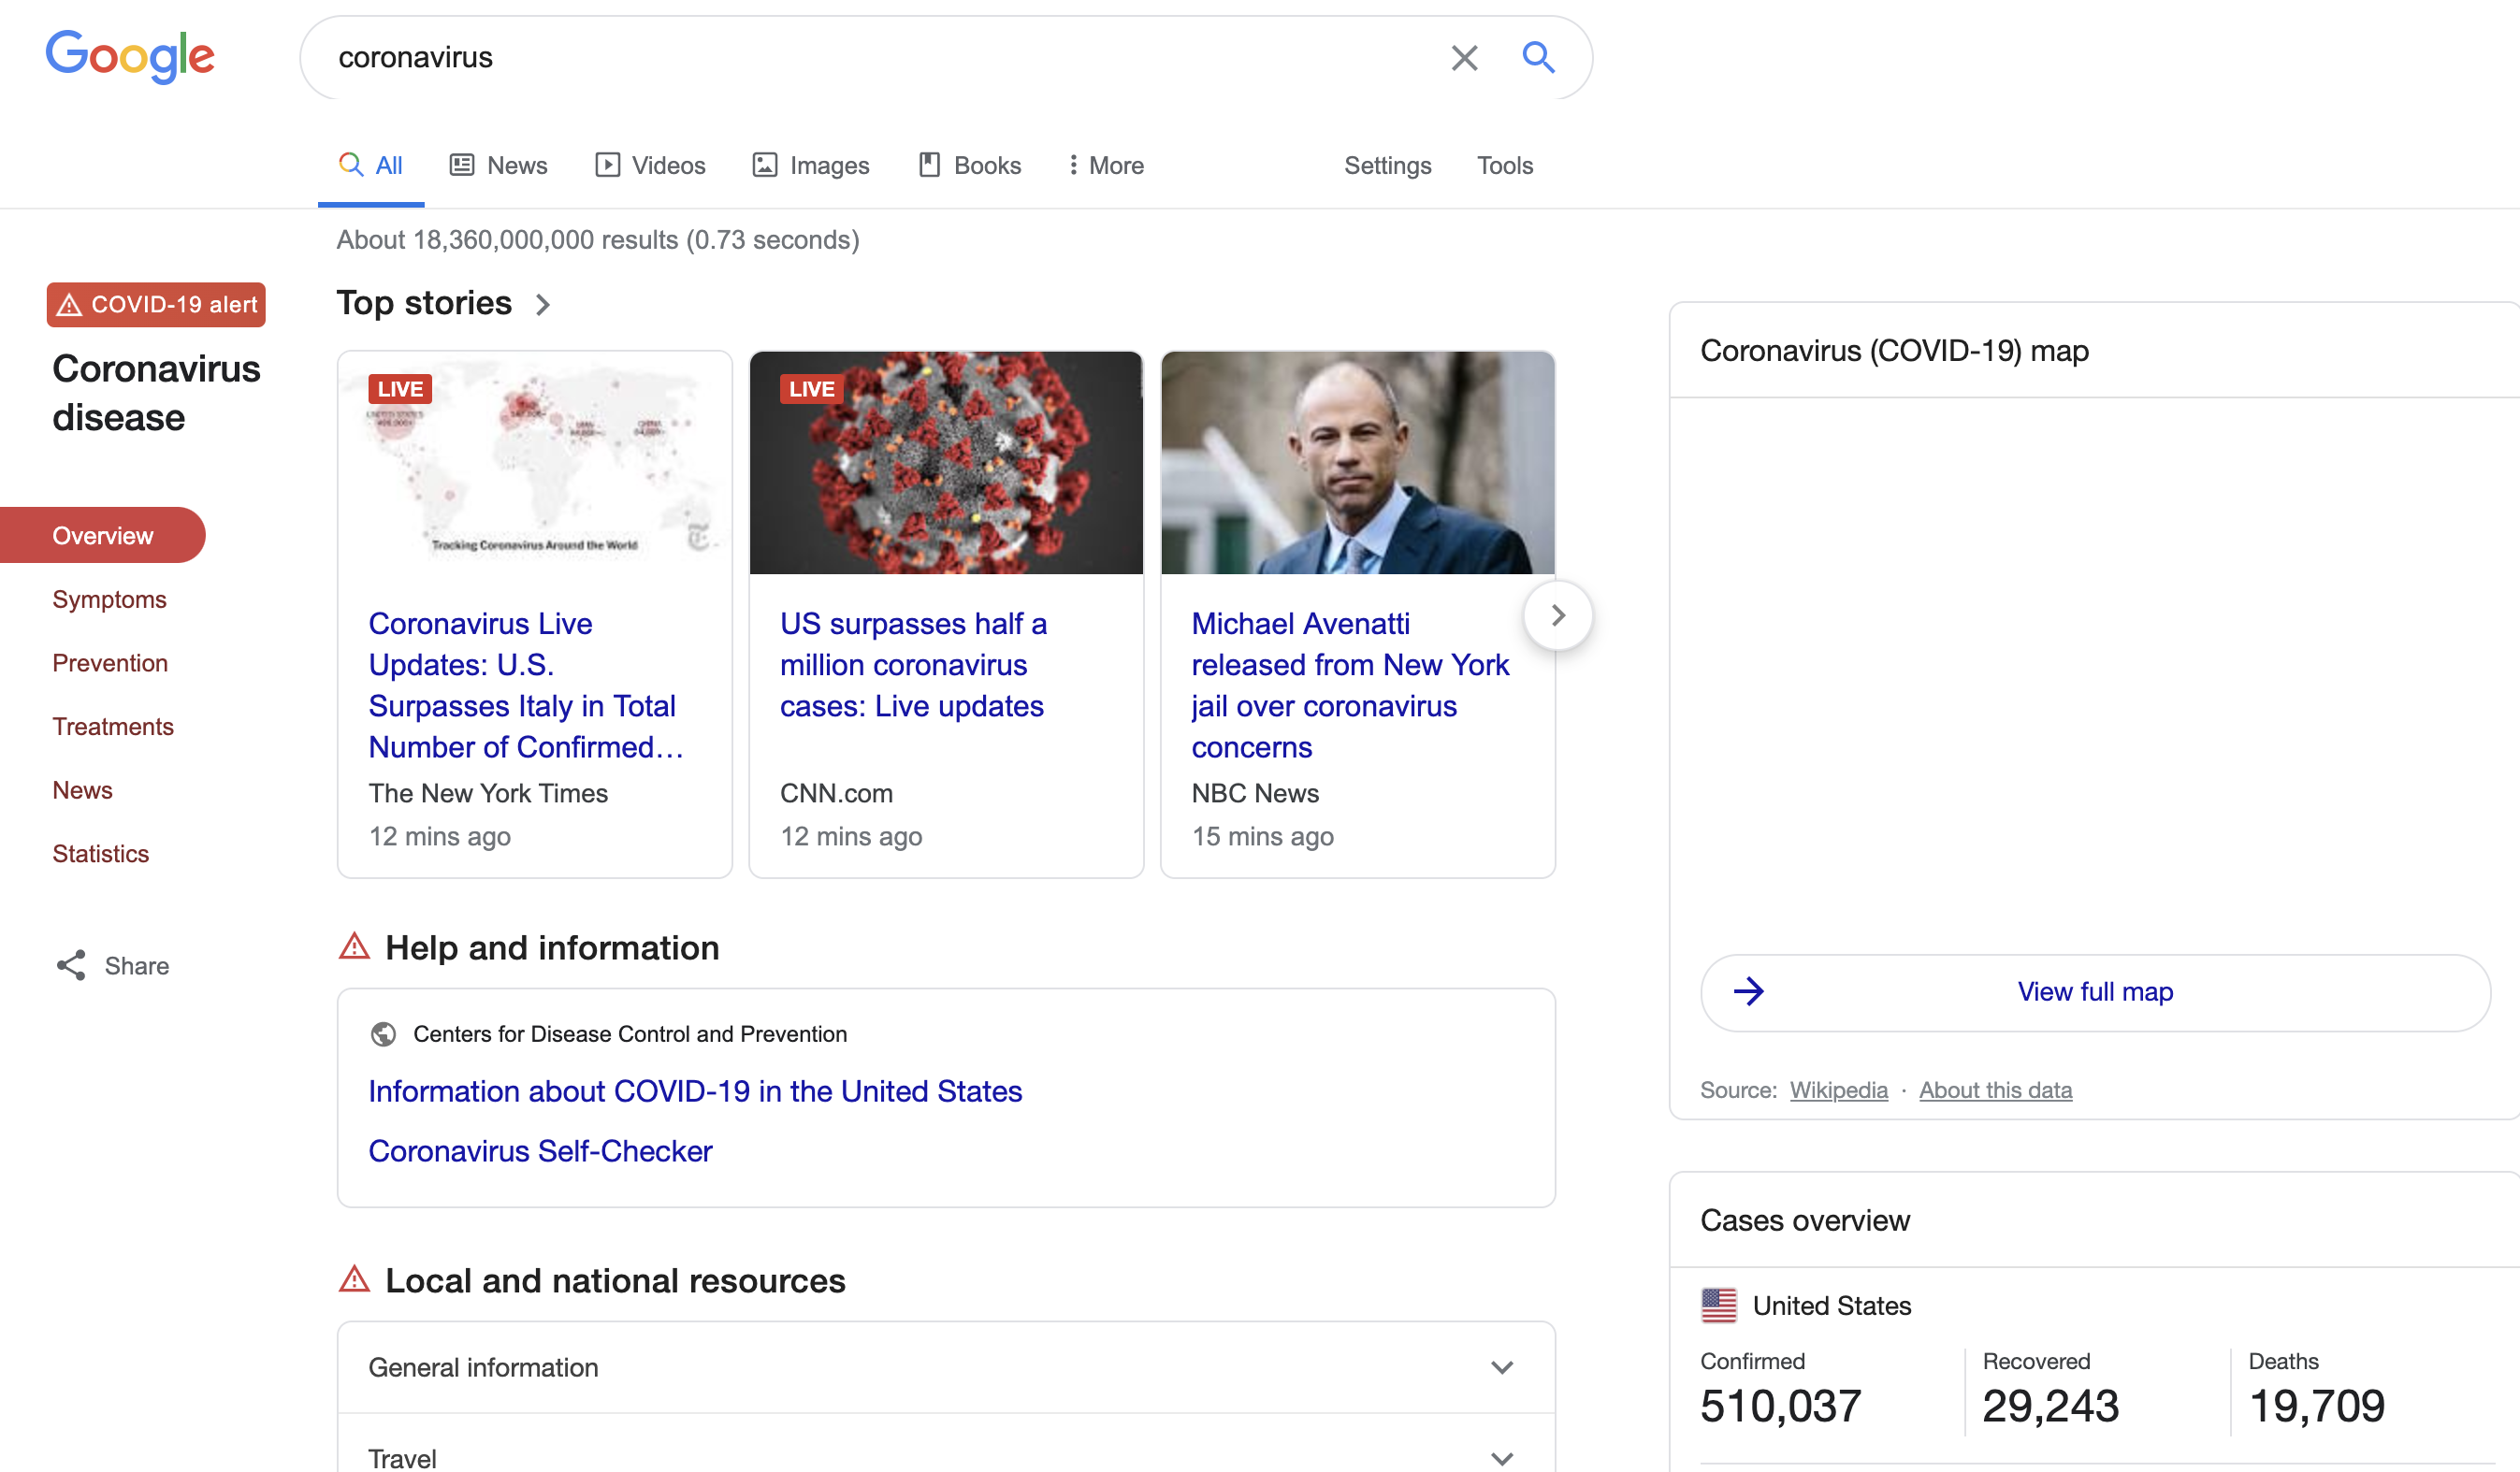 Coronavirus information in Google SERP.